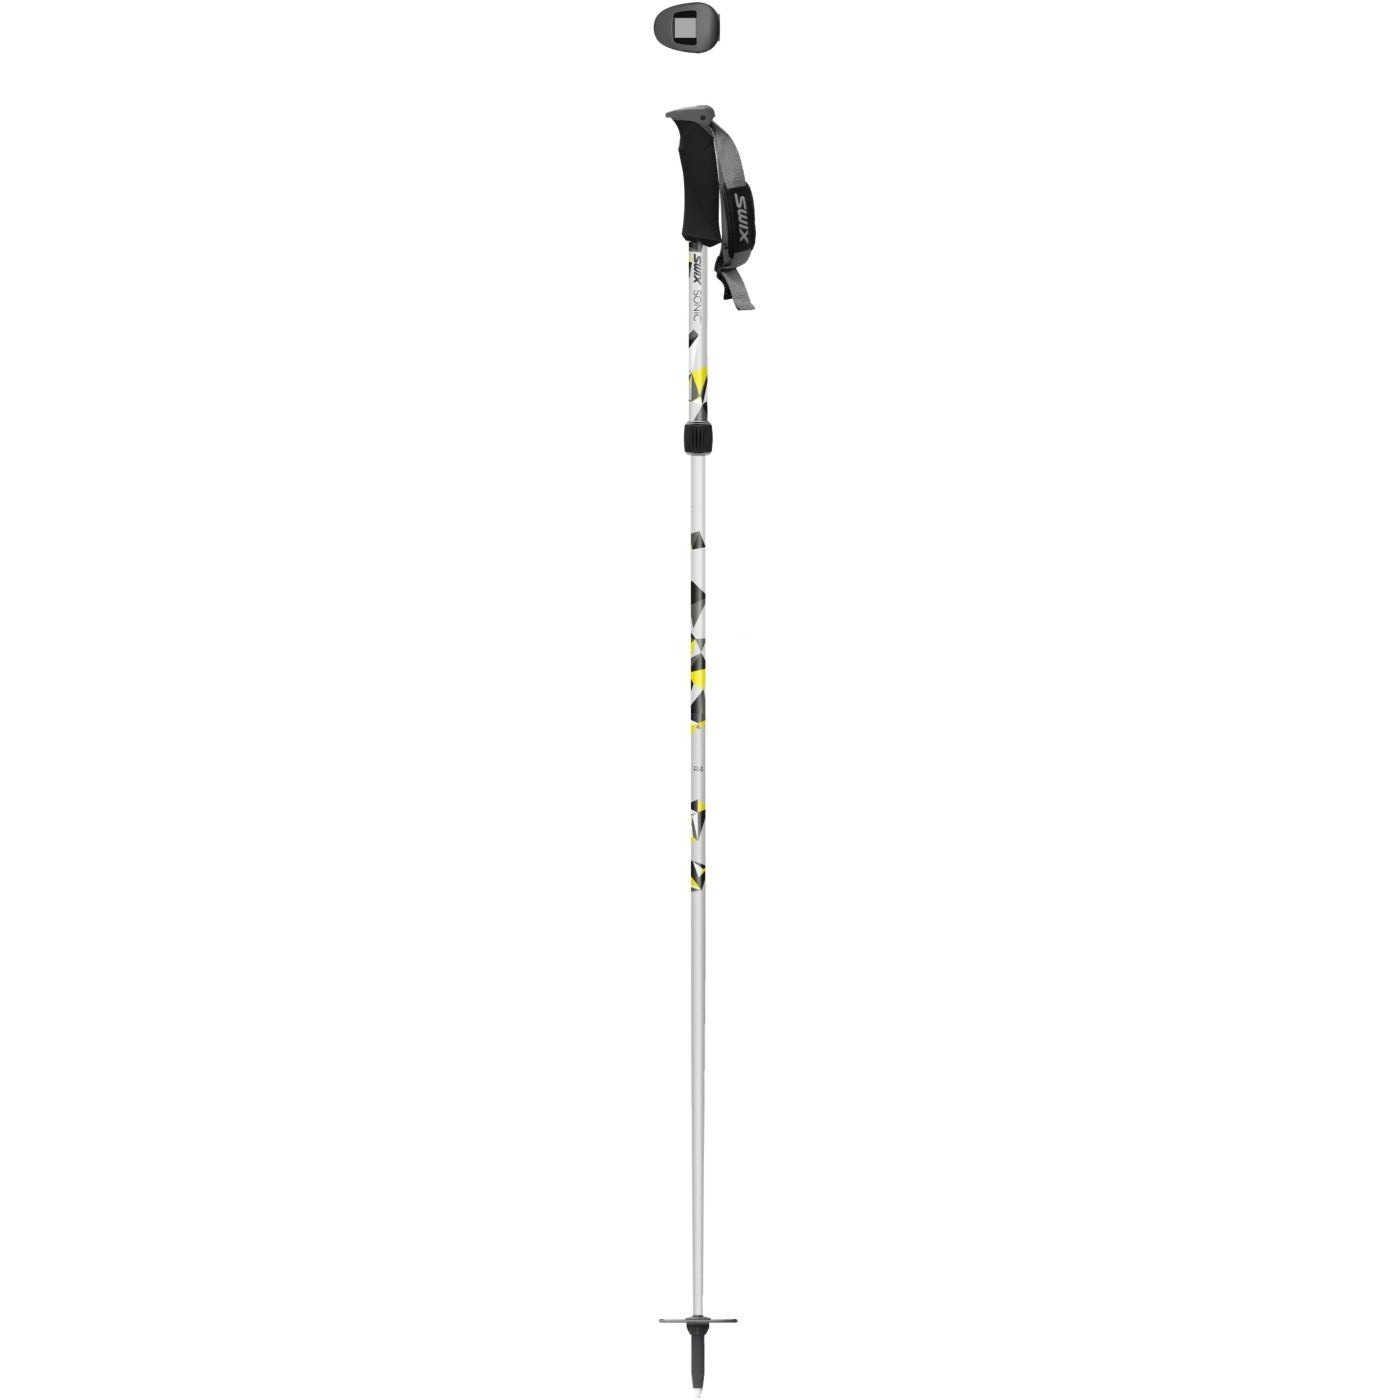 Swix Sonic R4 Adjustable